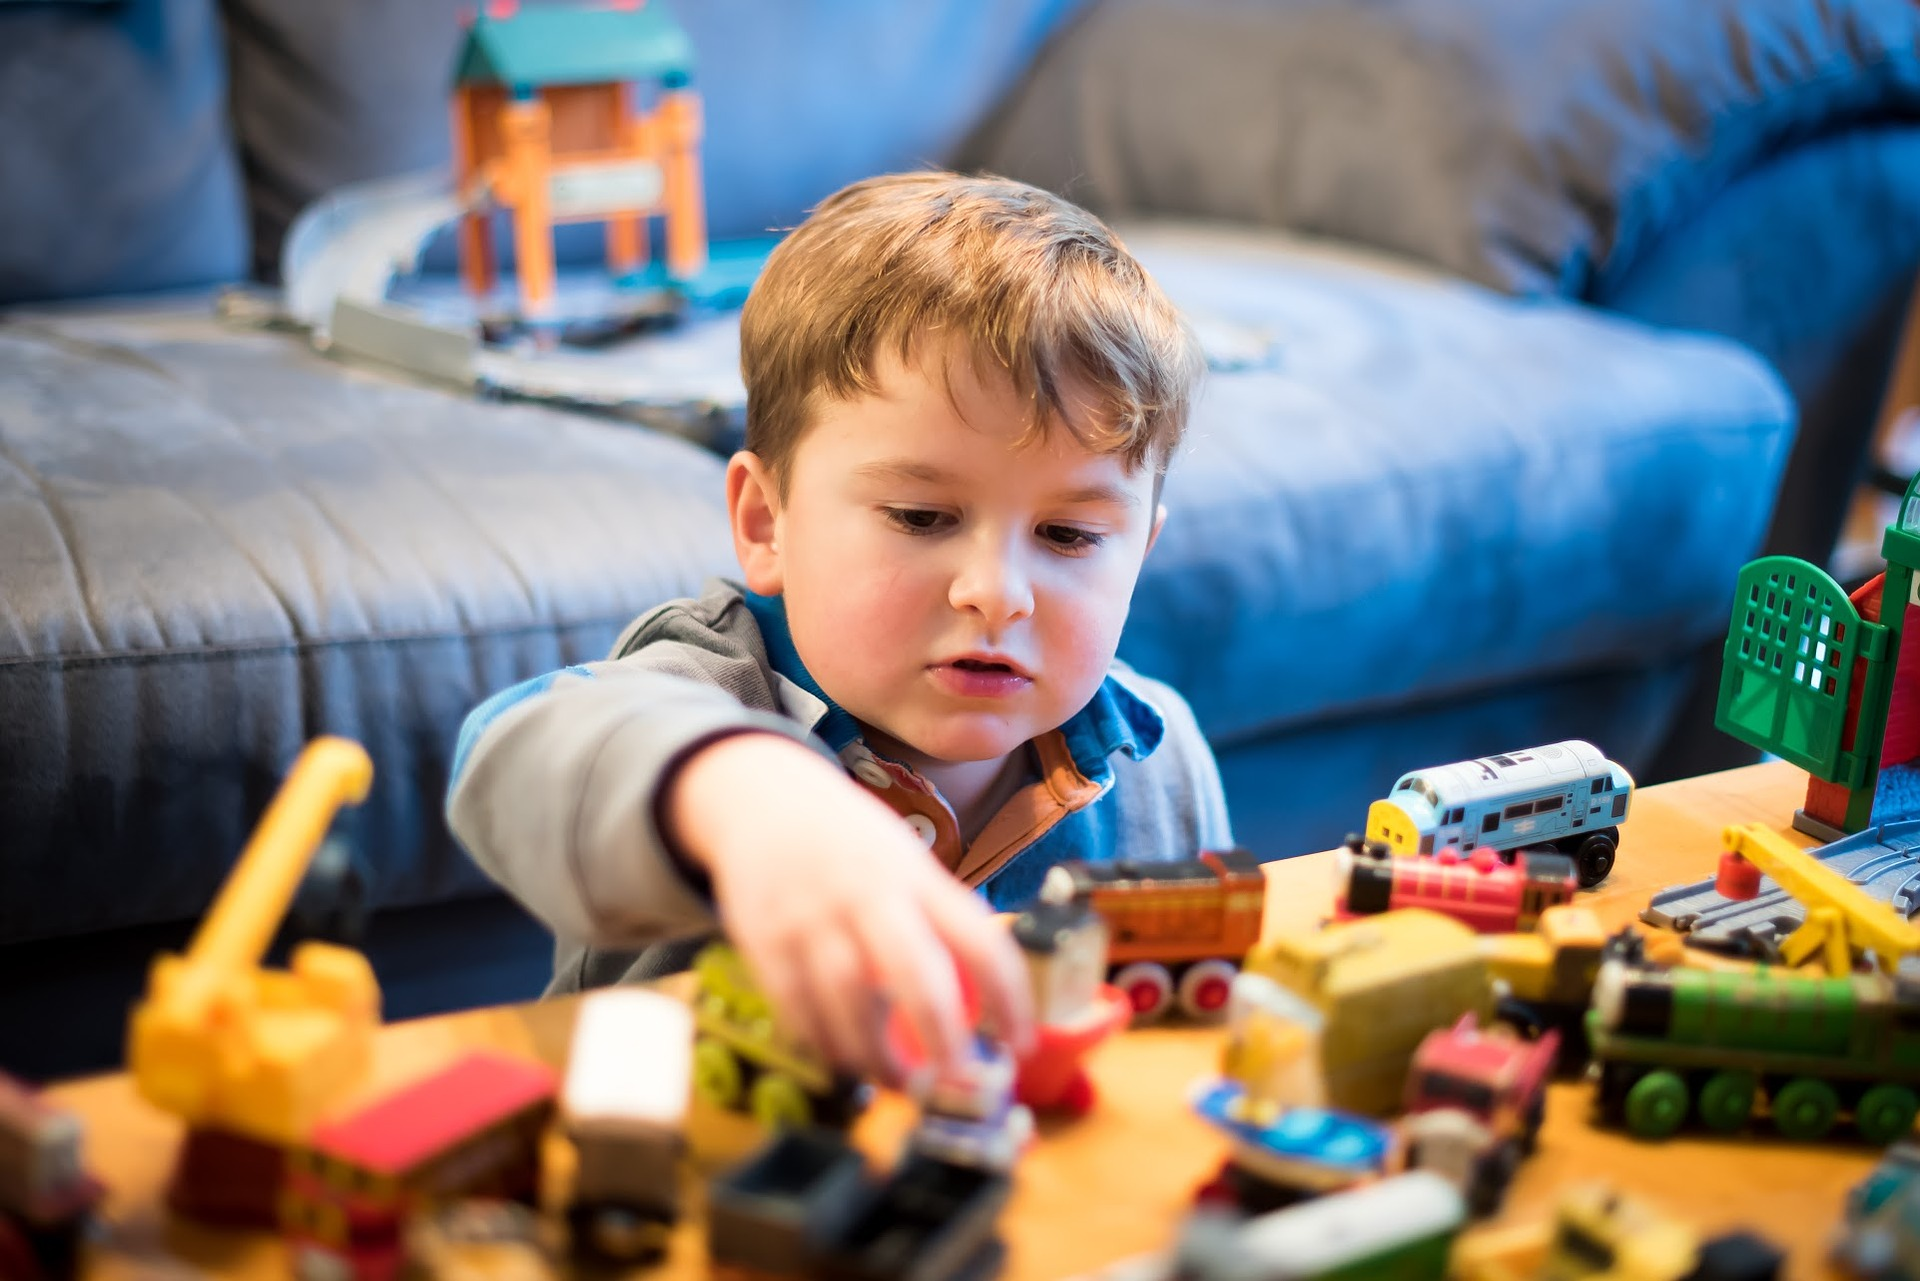 Children with autism, fine motor, learning, Richmond House, Care, Learning, Fun, Complex health needs, interaction, East Riding, York, disabilities, family support, Child Care